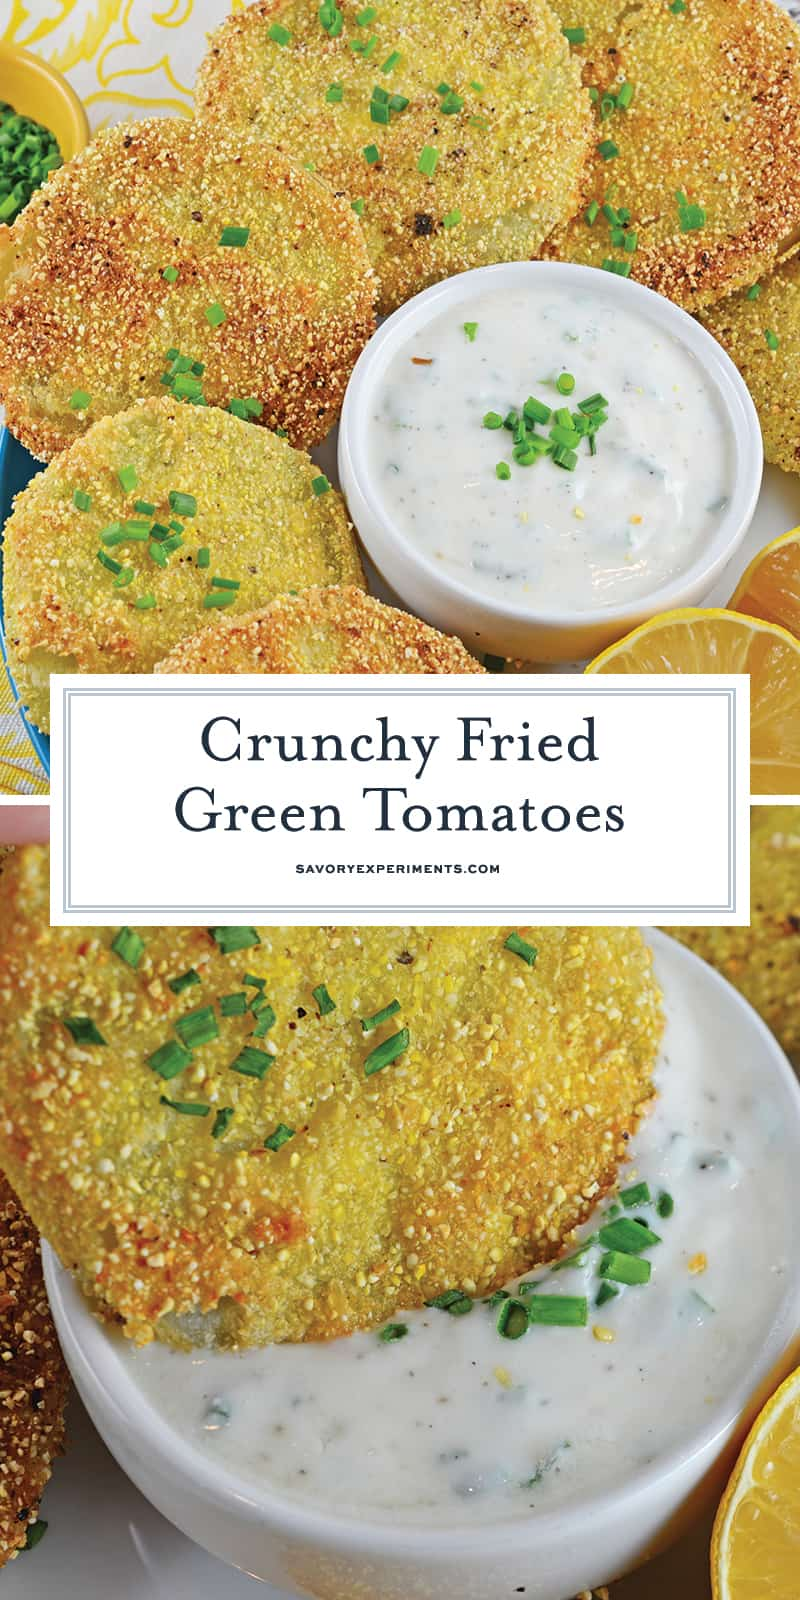 Fried Green Tomatoes are a Southern tradition! This Fried Green Tomatoes Recipe is made up of juicy tomatoes coated with cornmeal, and fried to a golden brown! #friedgreentomatoesrecipe #howtomakefriedgreentomatoes www.savoryexperiments.com